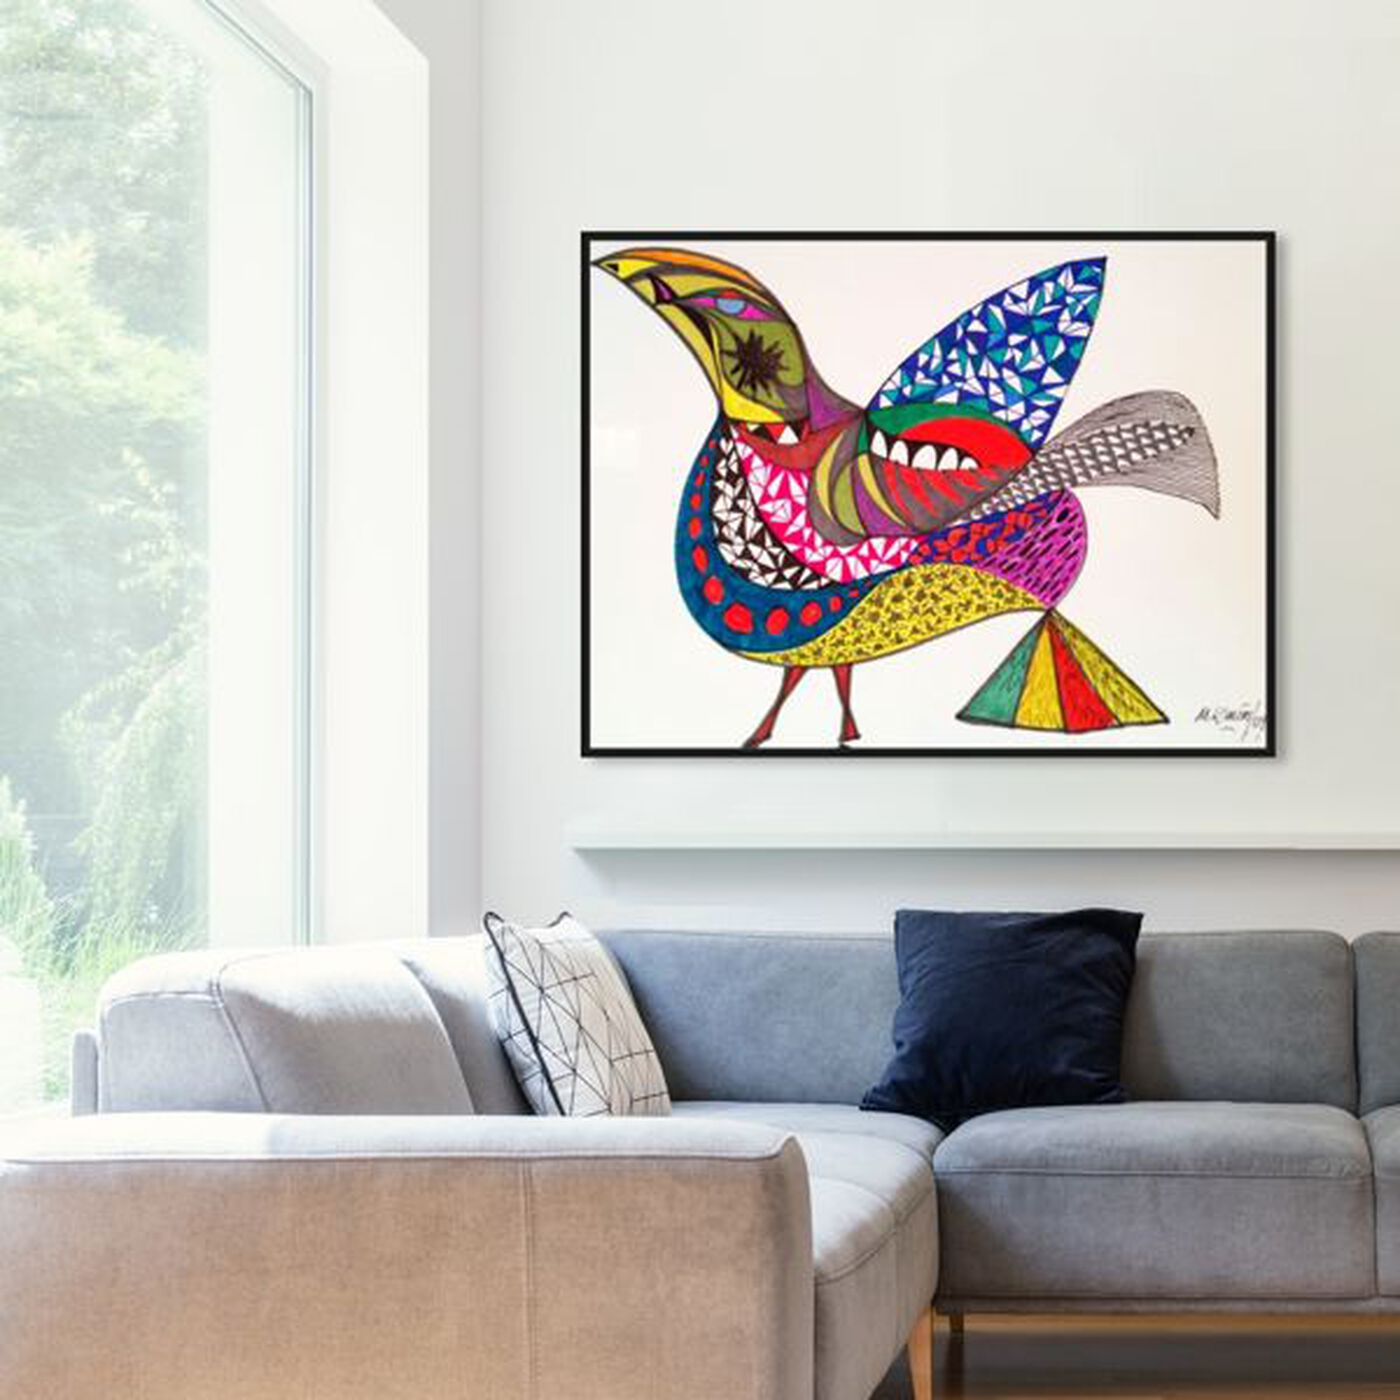 Hanging view of Bird featuring animals and birds art.